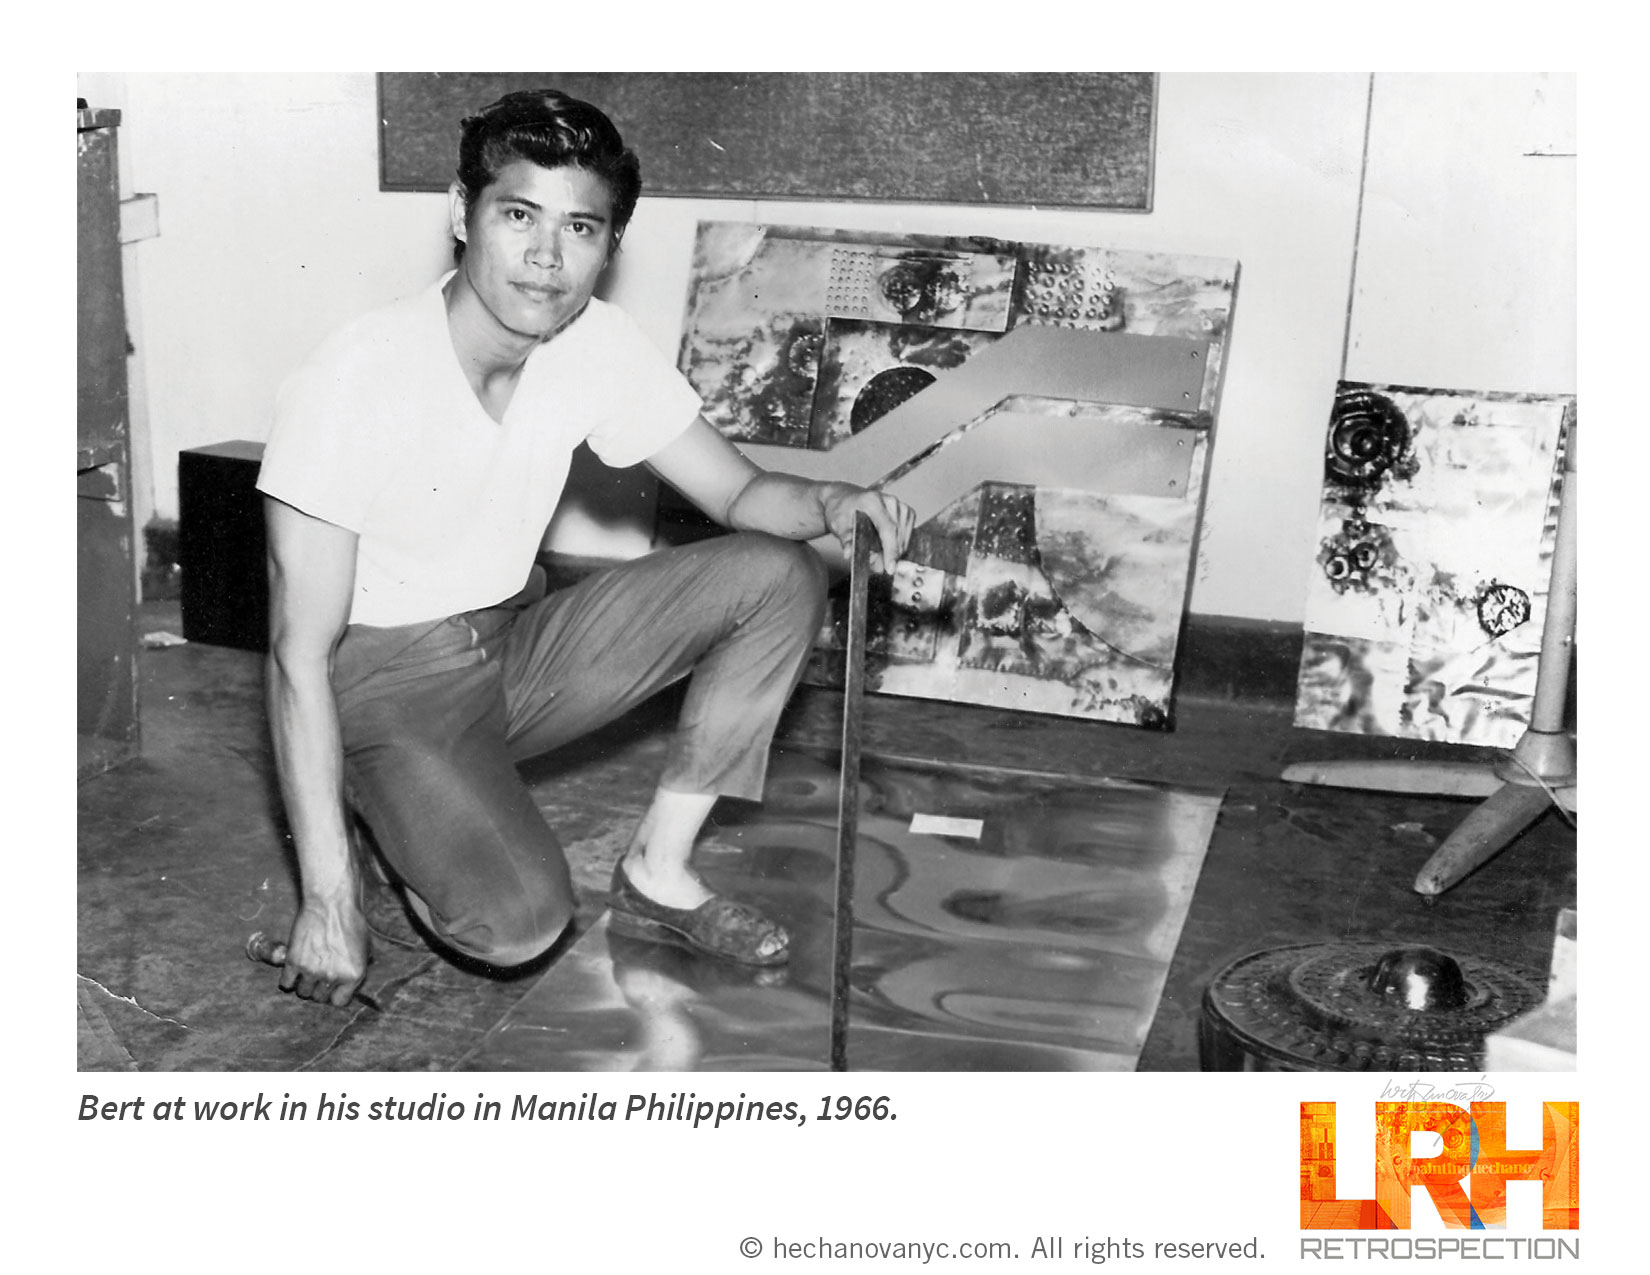 Bert at his studio in Manila